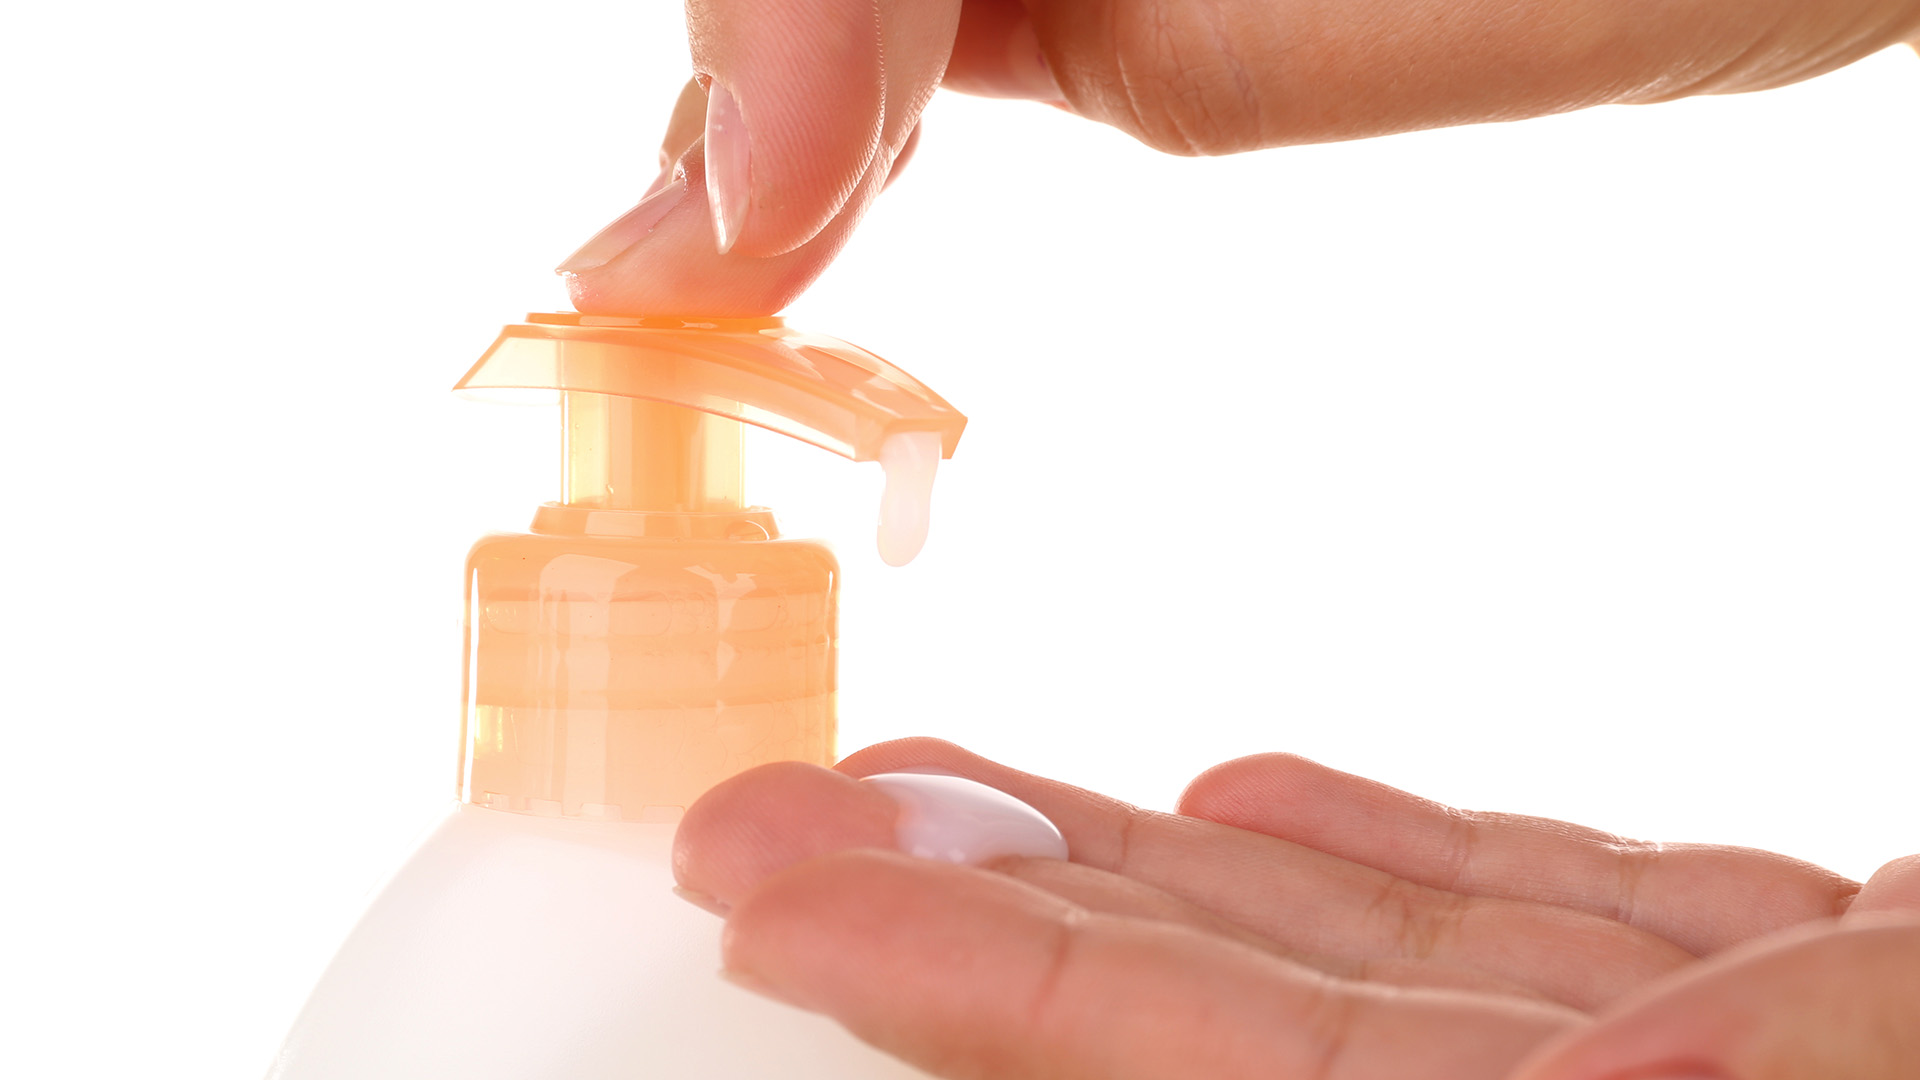 Foam or liquid soap — which is better?